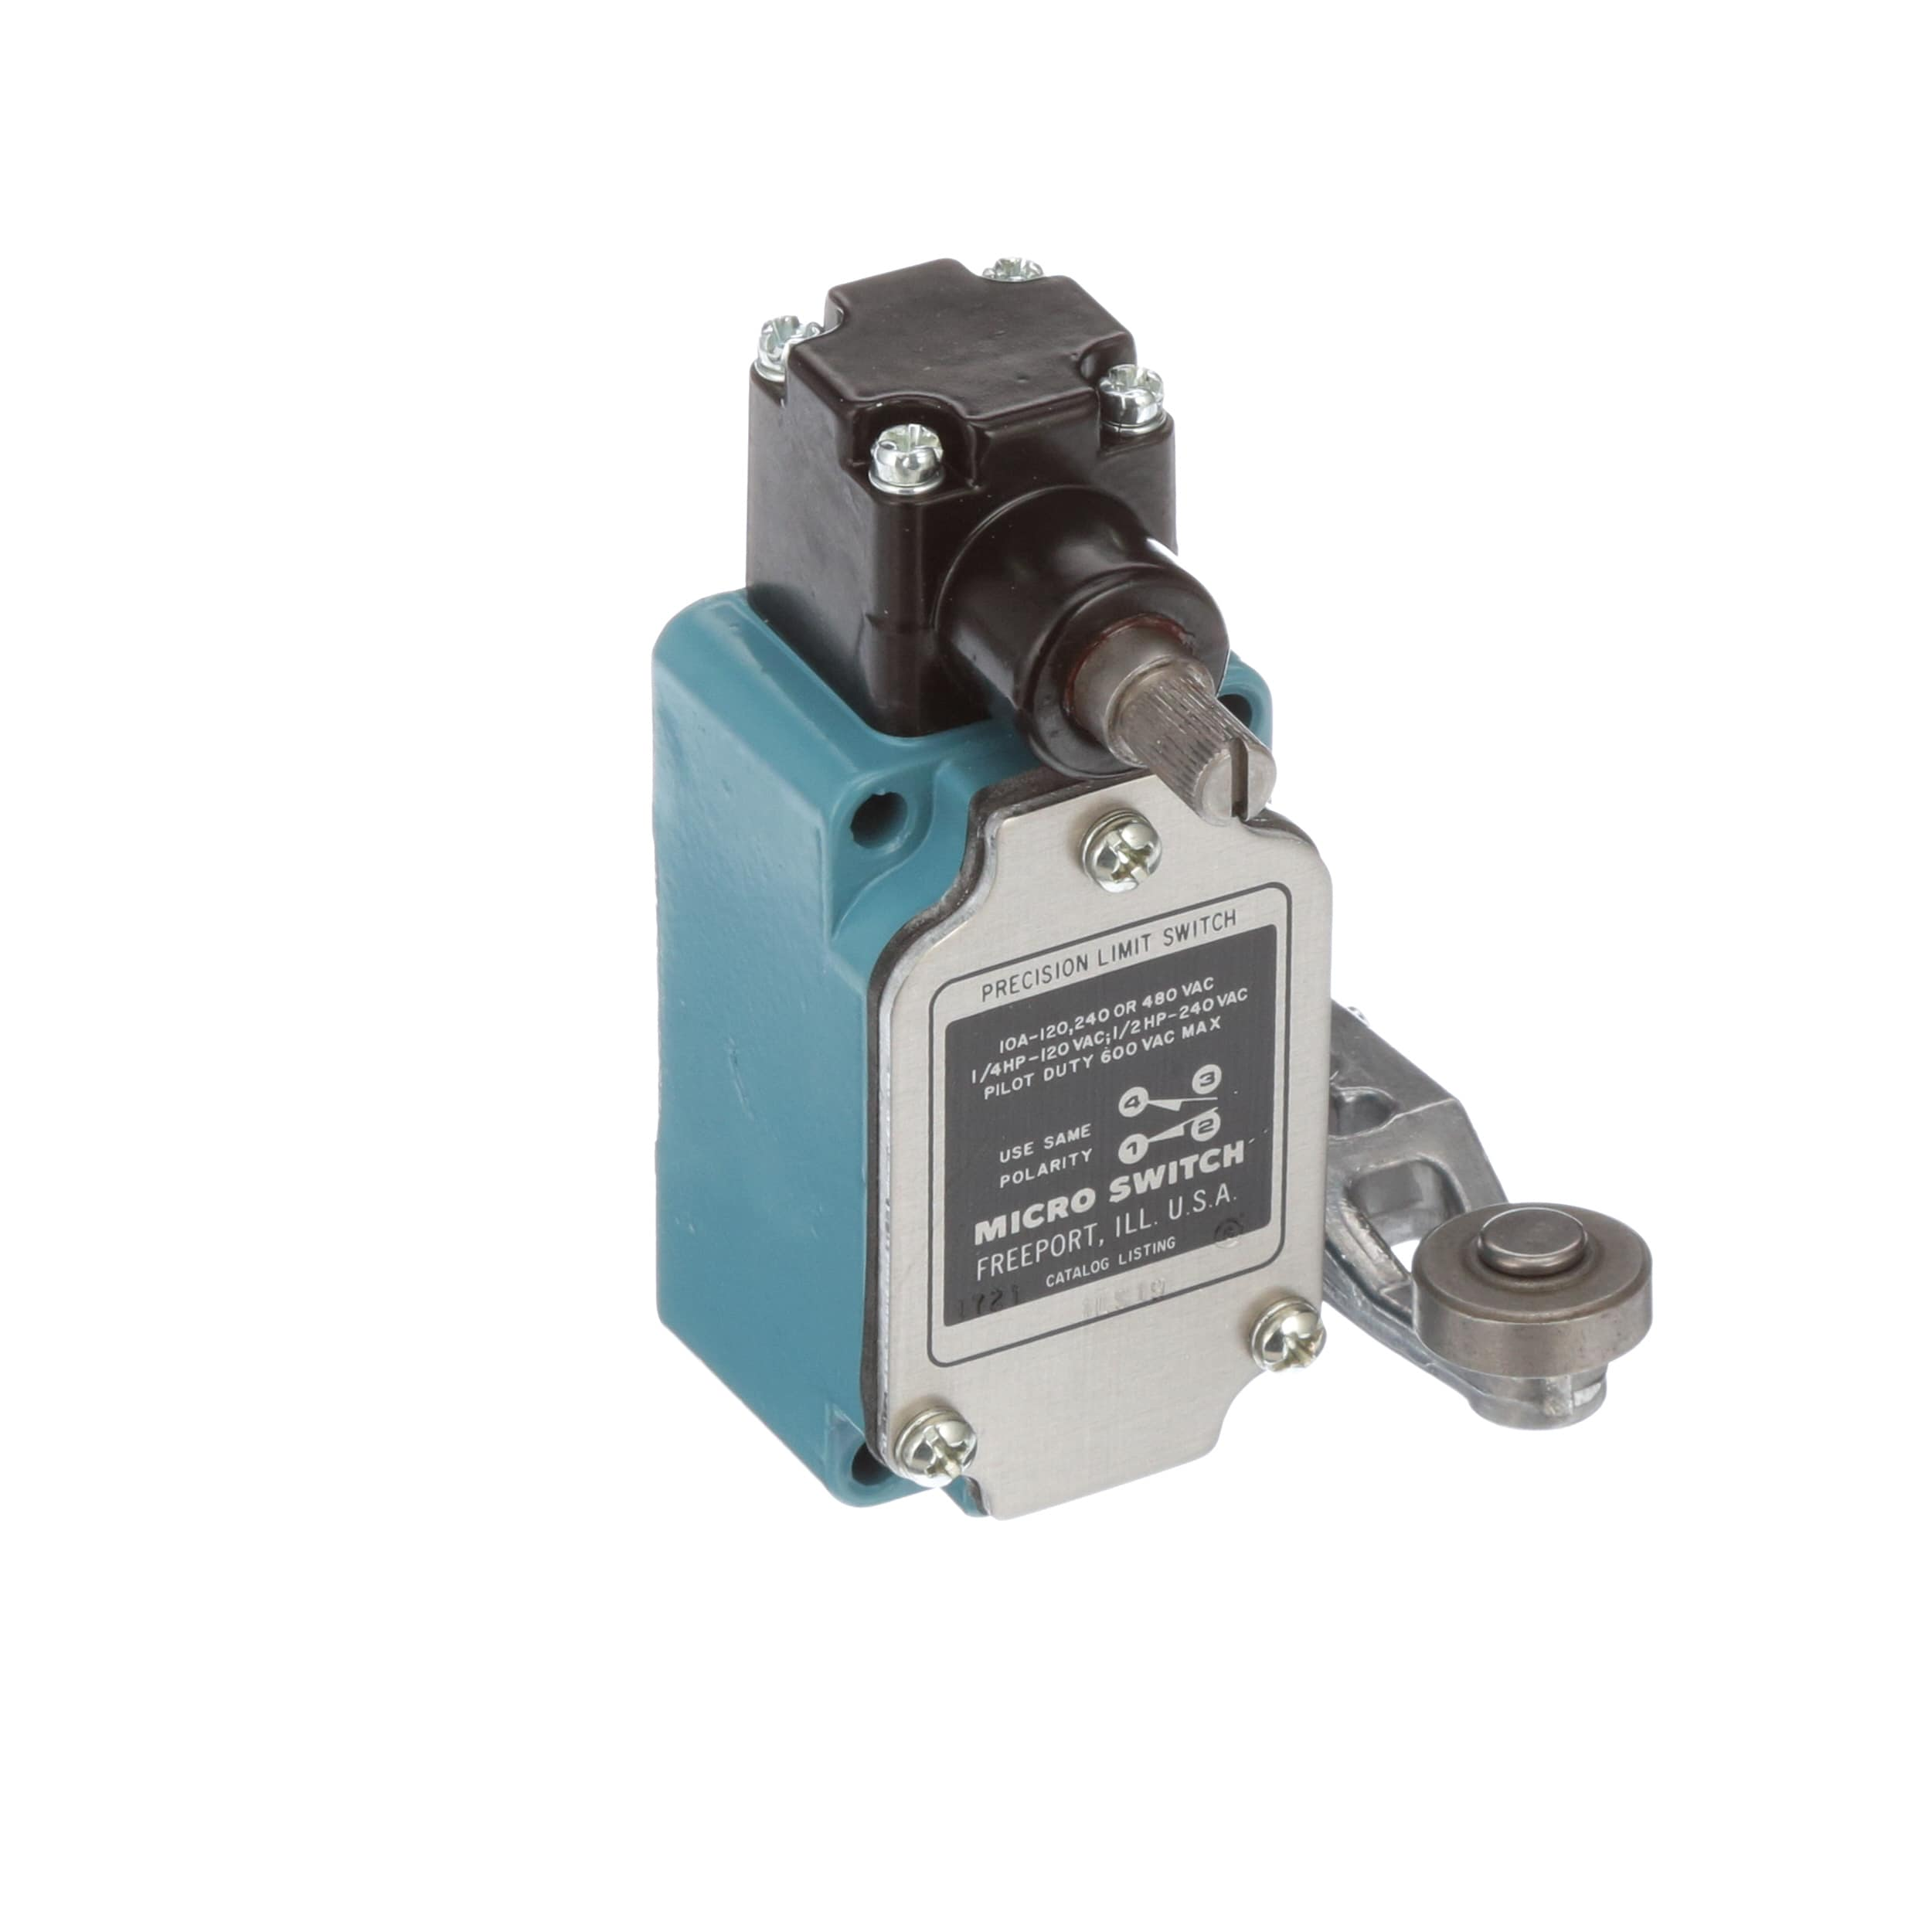 Honeywell 1ls19 Limit Switch Compact Rotary Actuated Roller Polarity Of A Dc Motor Using Dpdt Relay And Timer Lever Allied Electronics Automation